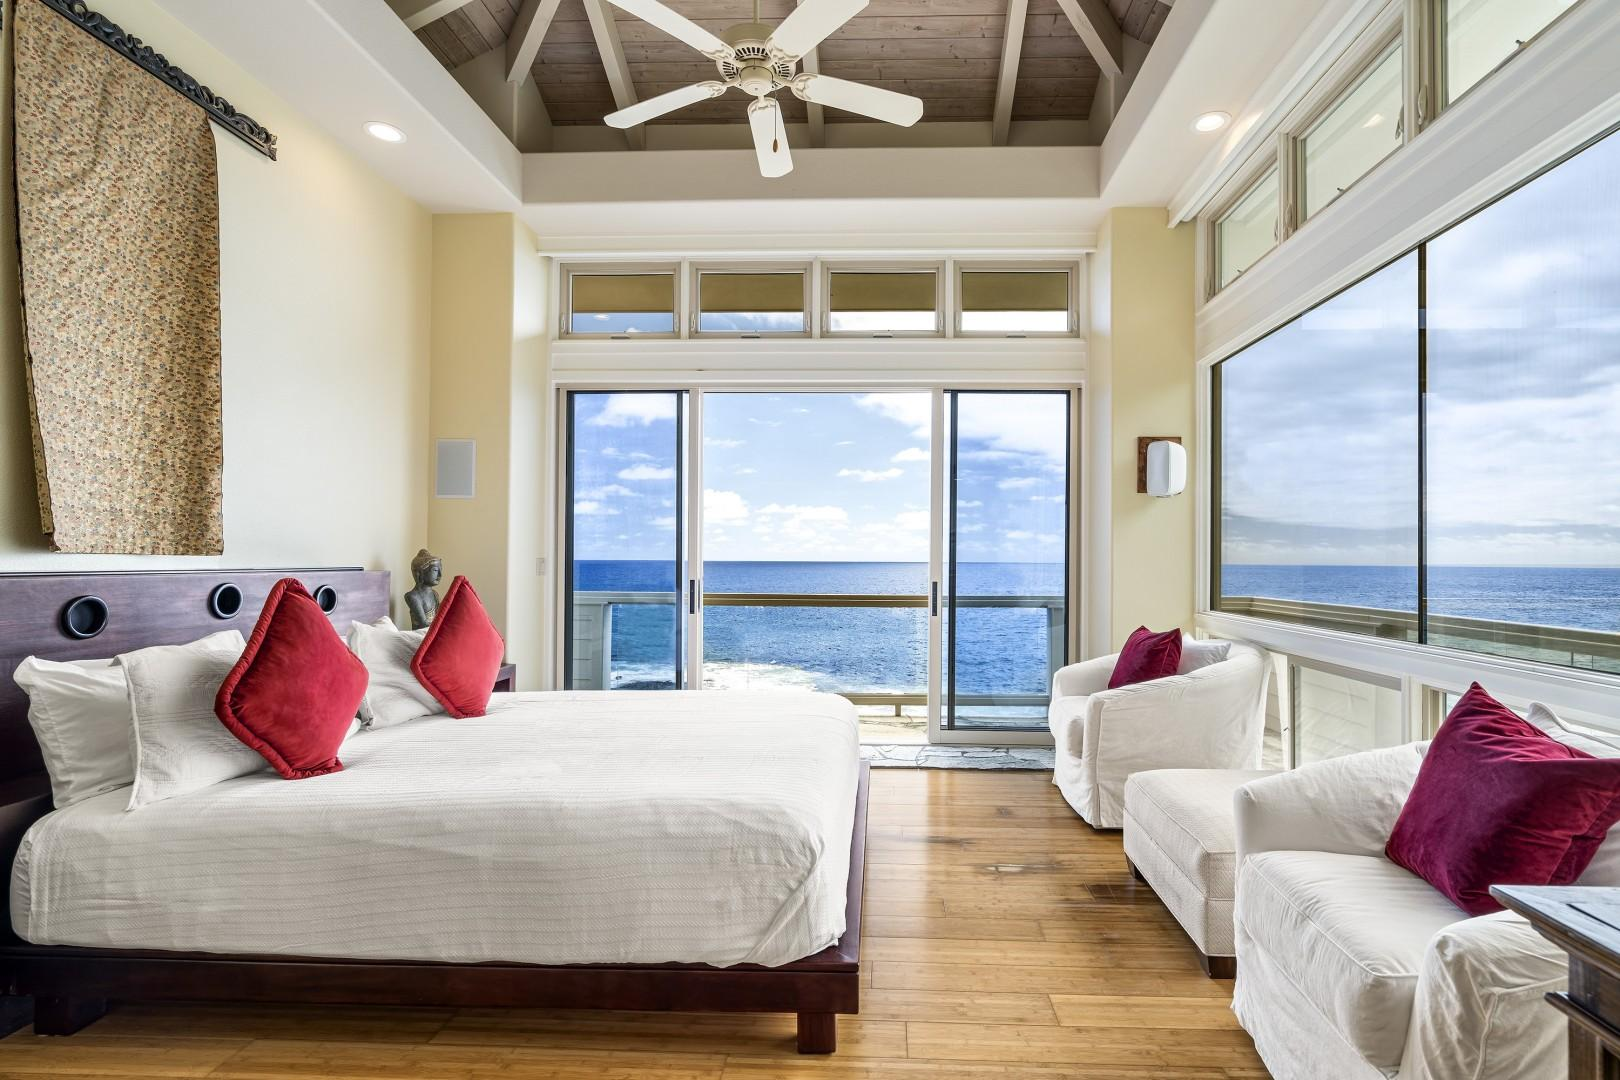 Additional seating and a private balcony can also be found in the Master bedroom